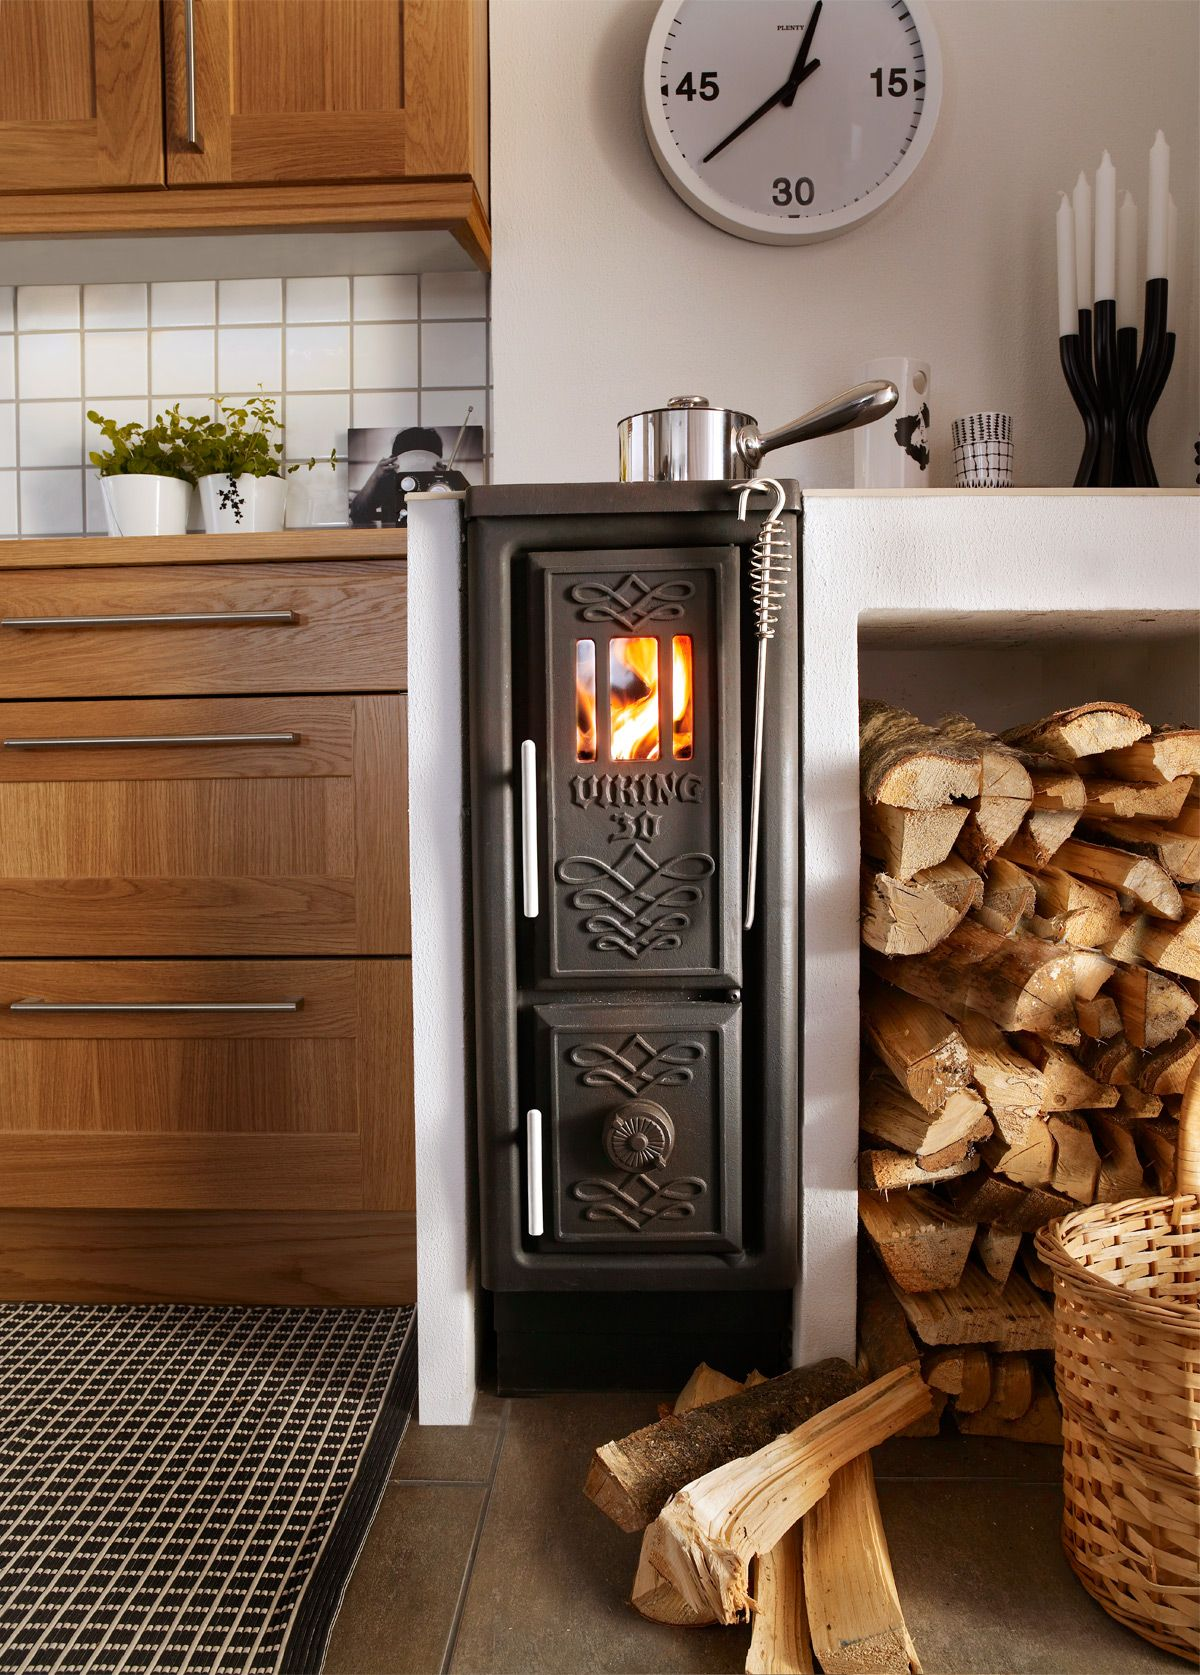 Ovens Vedspis Tiny Wood Stove Tiny Spaces Tiny House Living